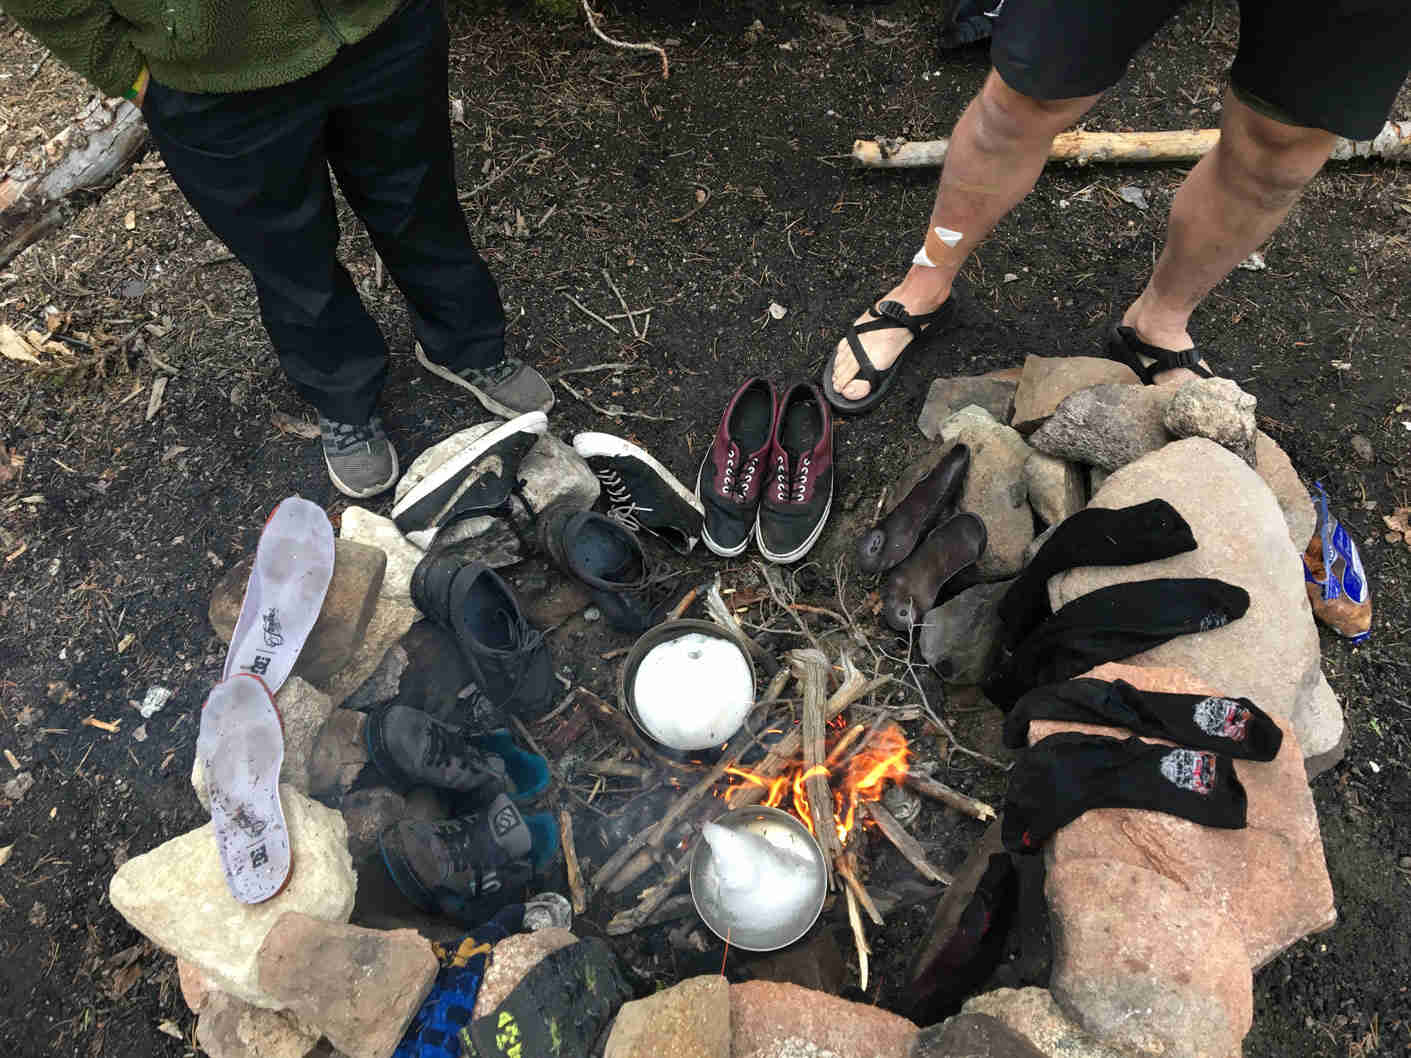 Downward view of shoes and socks on the rocks around a campfire